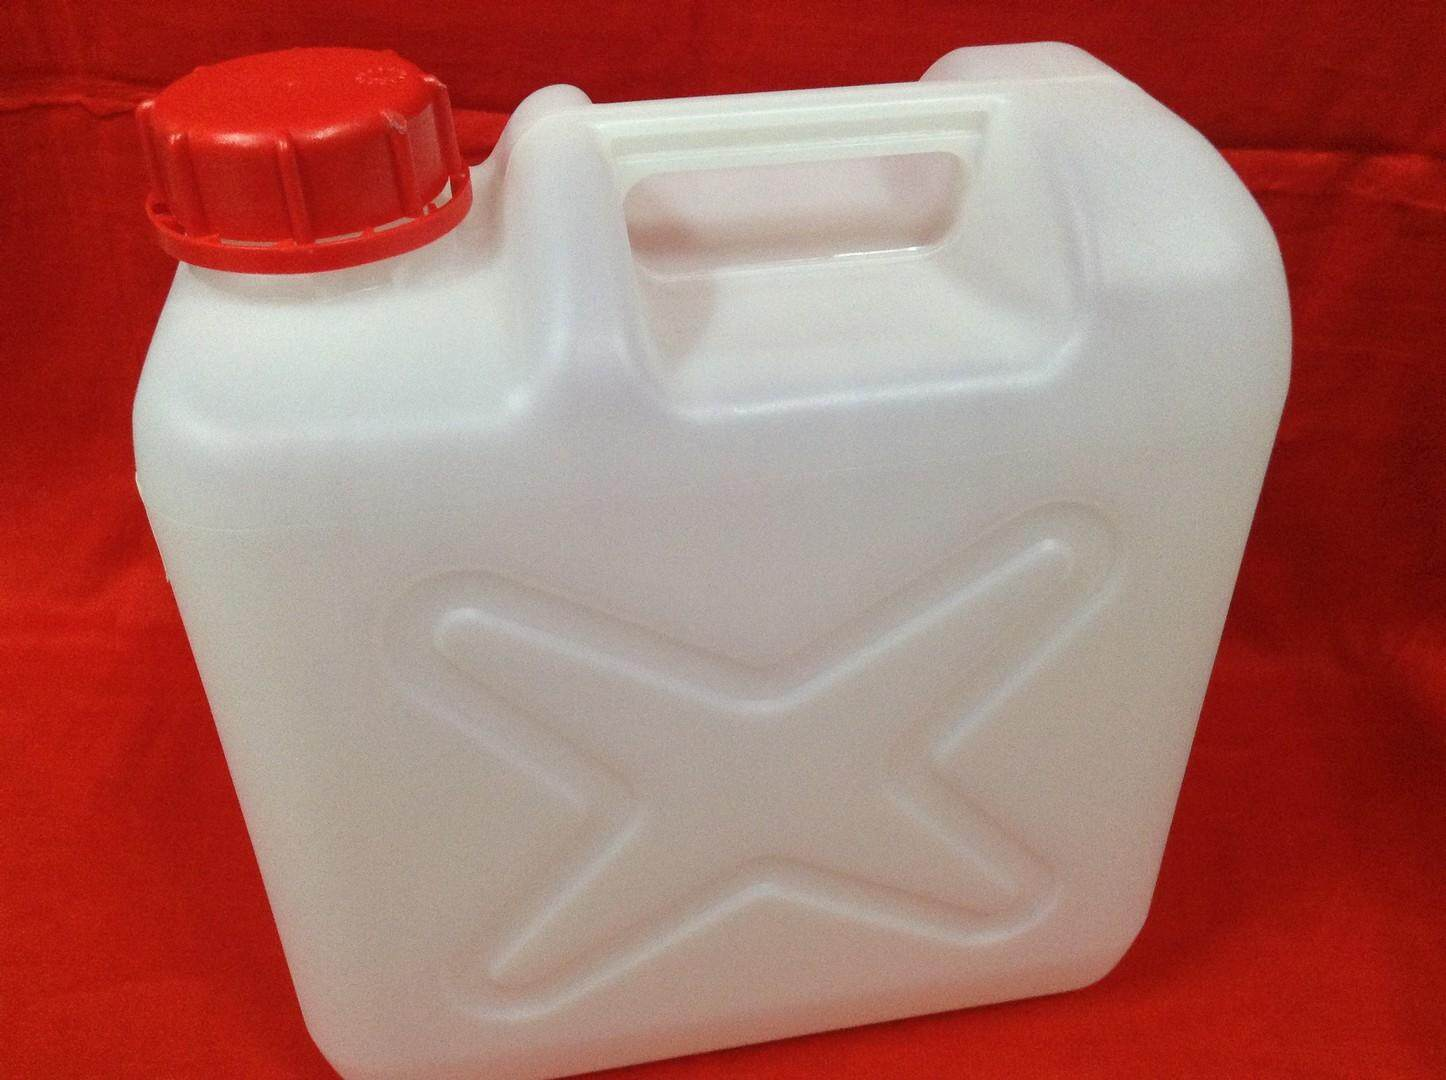 1pc Jerry Can 10 Liter For Petrol, Chemical, Alkaline Water. Ship In 6 Hours ! (off White) By Nayomi Houseware.